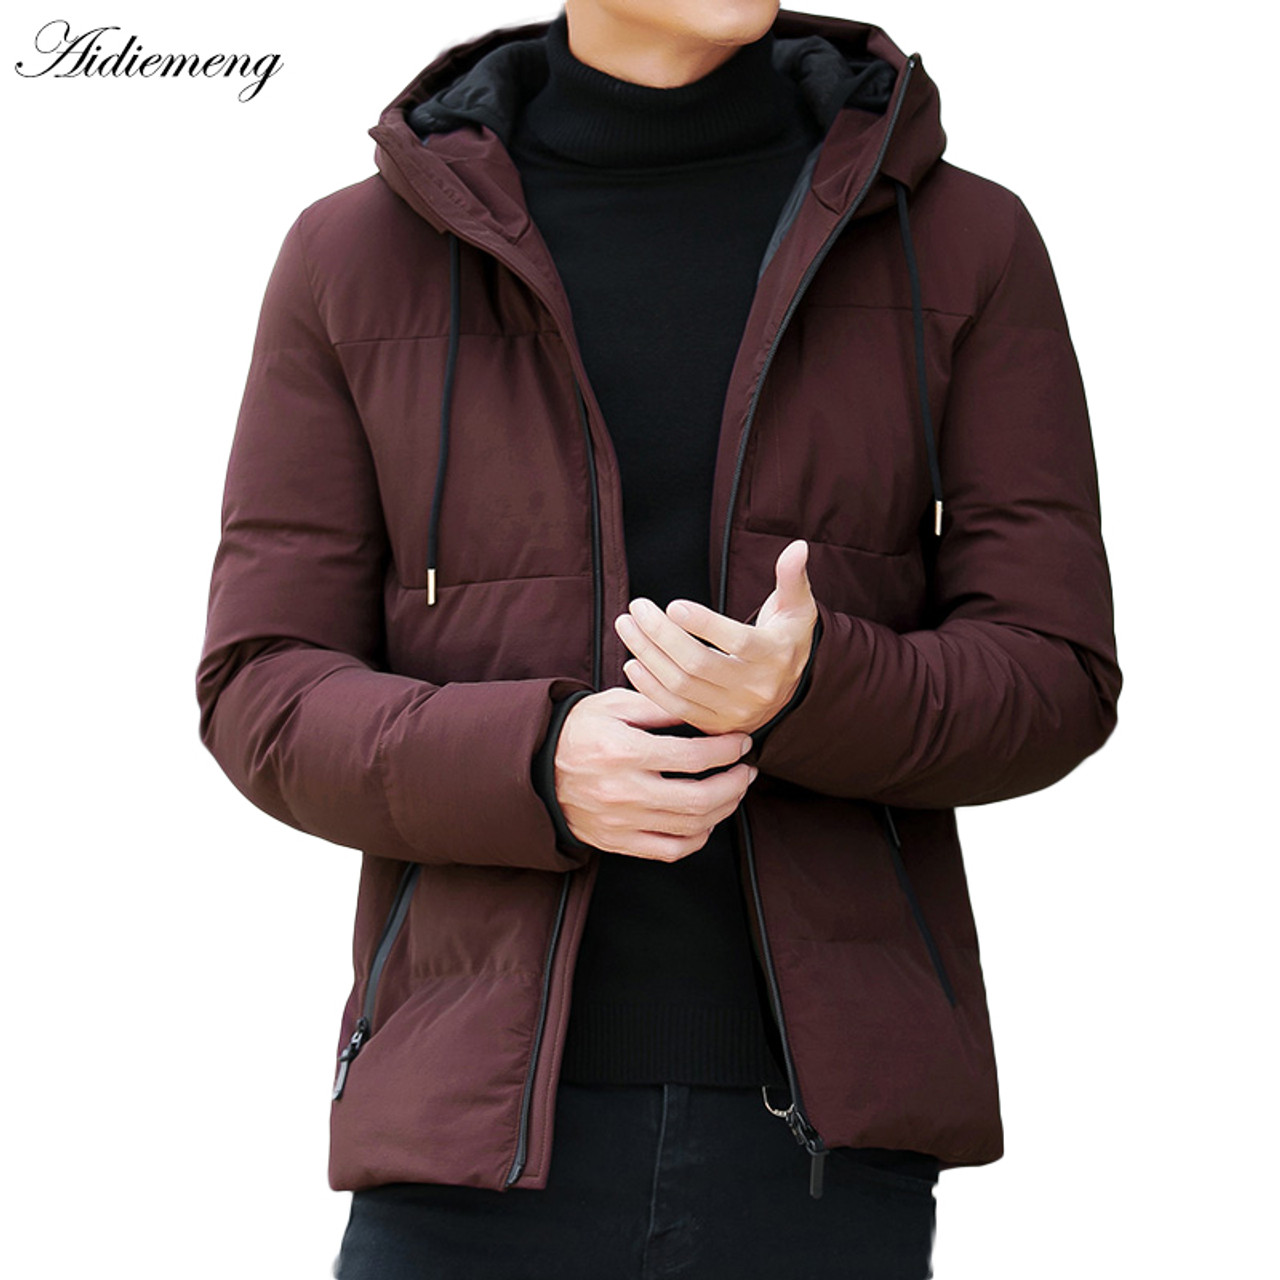 pretty nice 46f2f 99783 Winter Jacket Men Parka Fashion Hooded Jacket Slim Cotton Warm Jacket Coat  Men Solid Colo Thick Down Parka Male Outwear Clothing